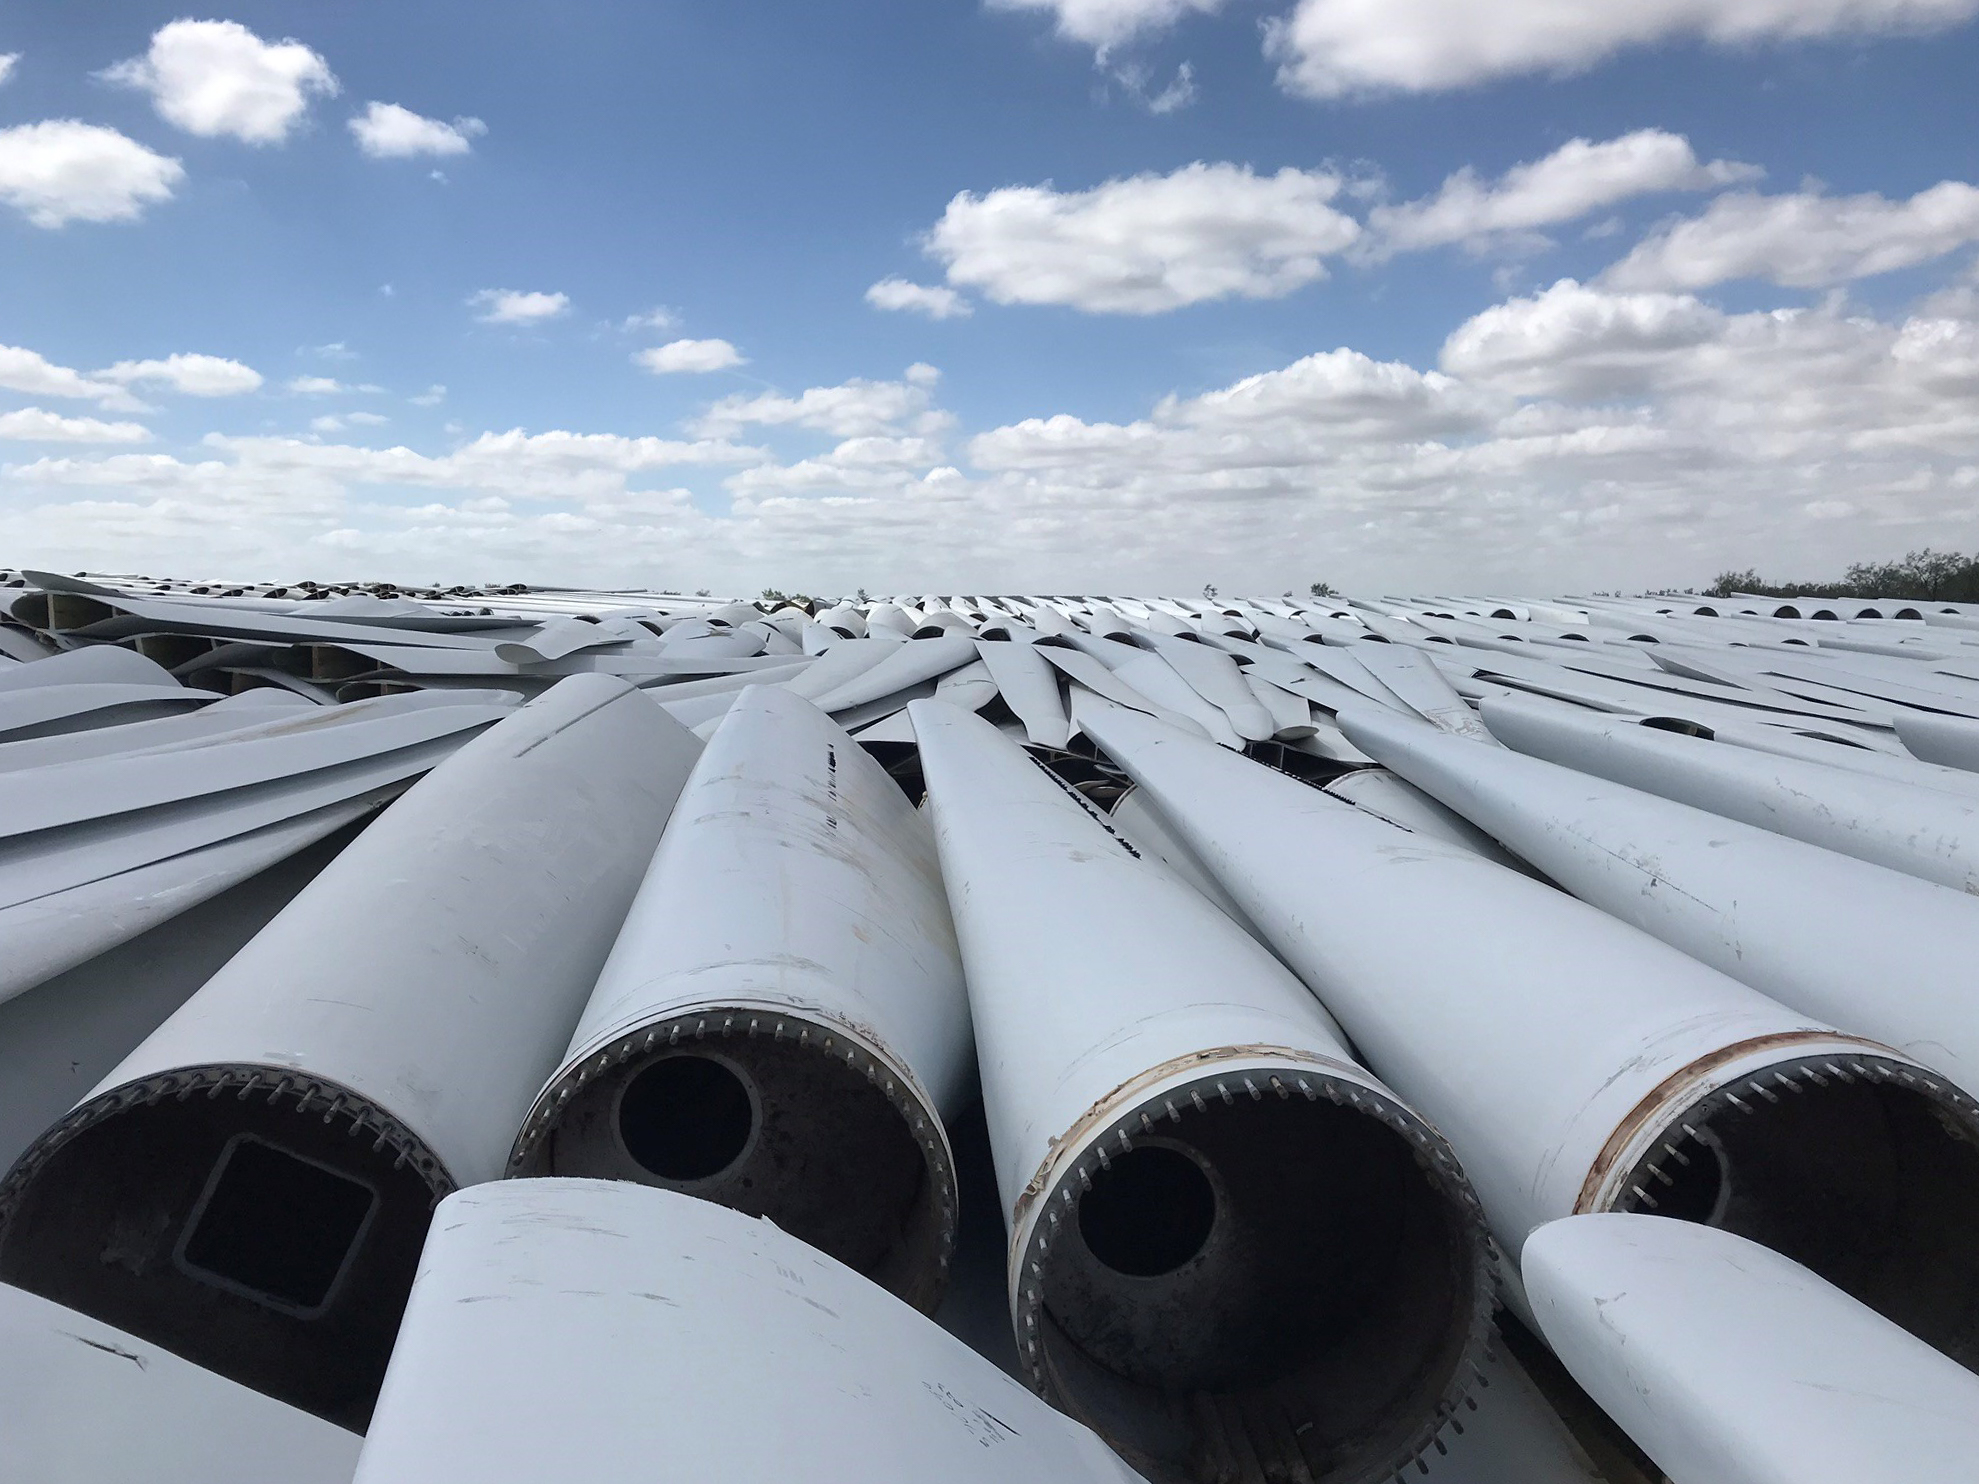 Photo of: Decommissioned wind turbine blades in a Global Fiberglass Solution staging yard in Sweetwater, Texas, U.S